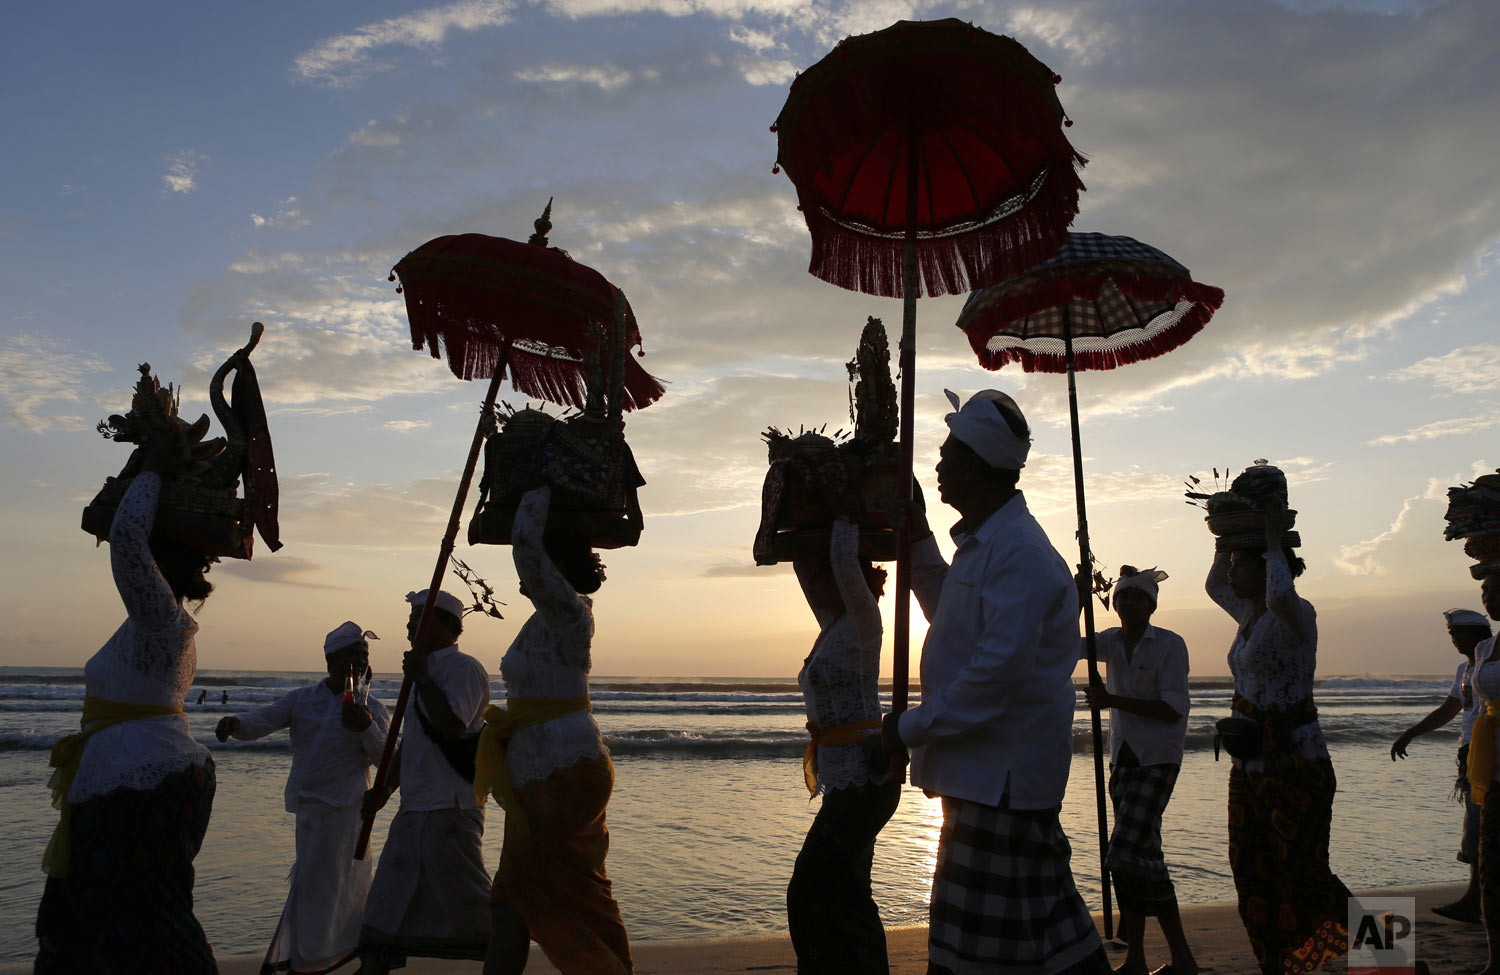 Balinese Hindus walk on a beach carrying sacred ornaments during a full moon Hindu ritual in Bali, Indonesia, Friday, April 19, 2019. (AP Photo/Firdia Lisnawati)